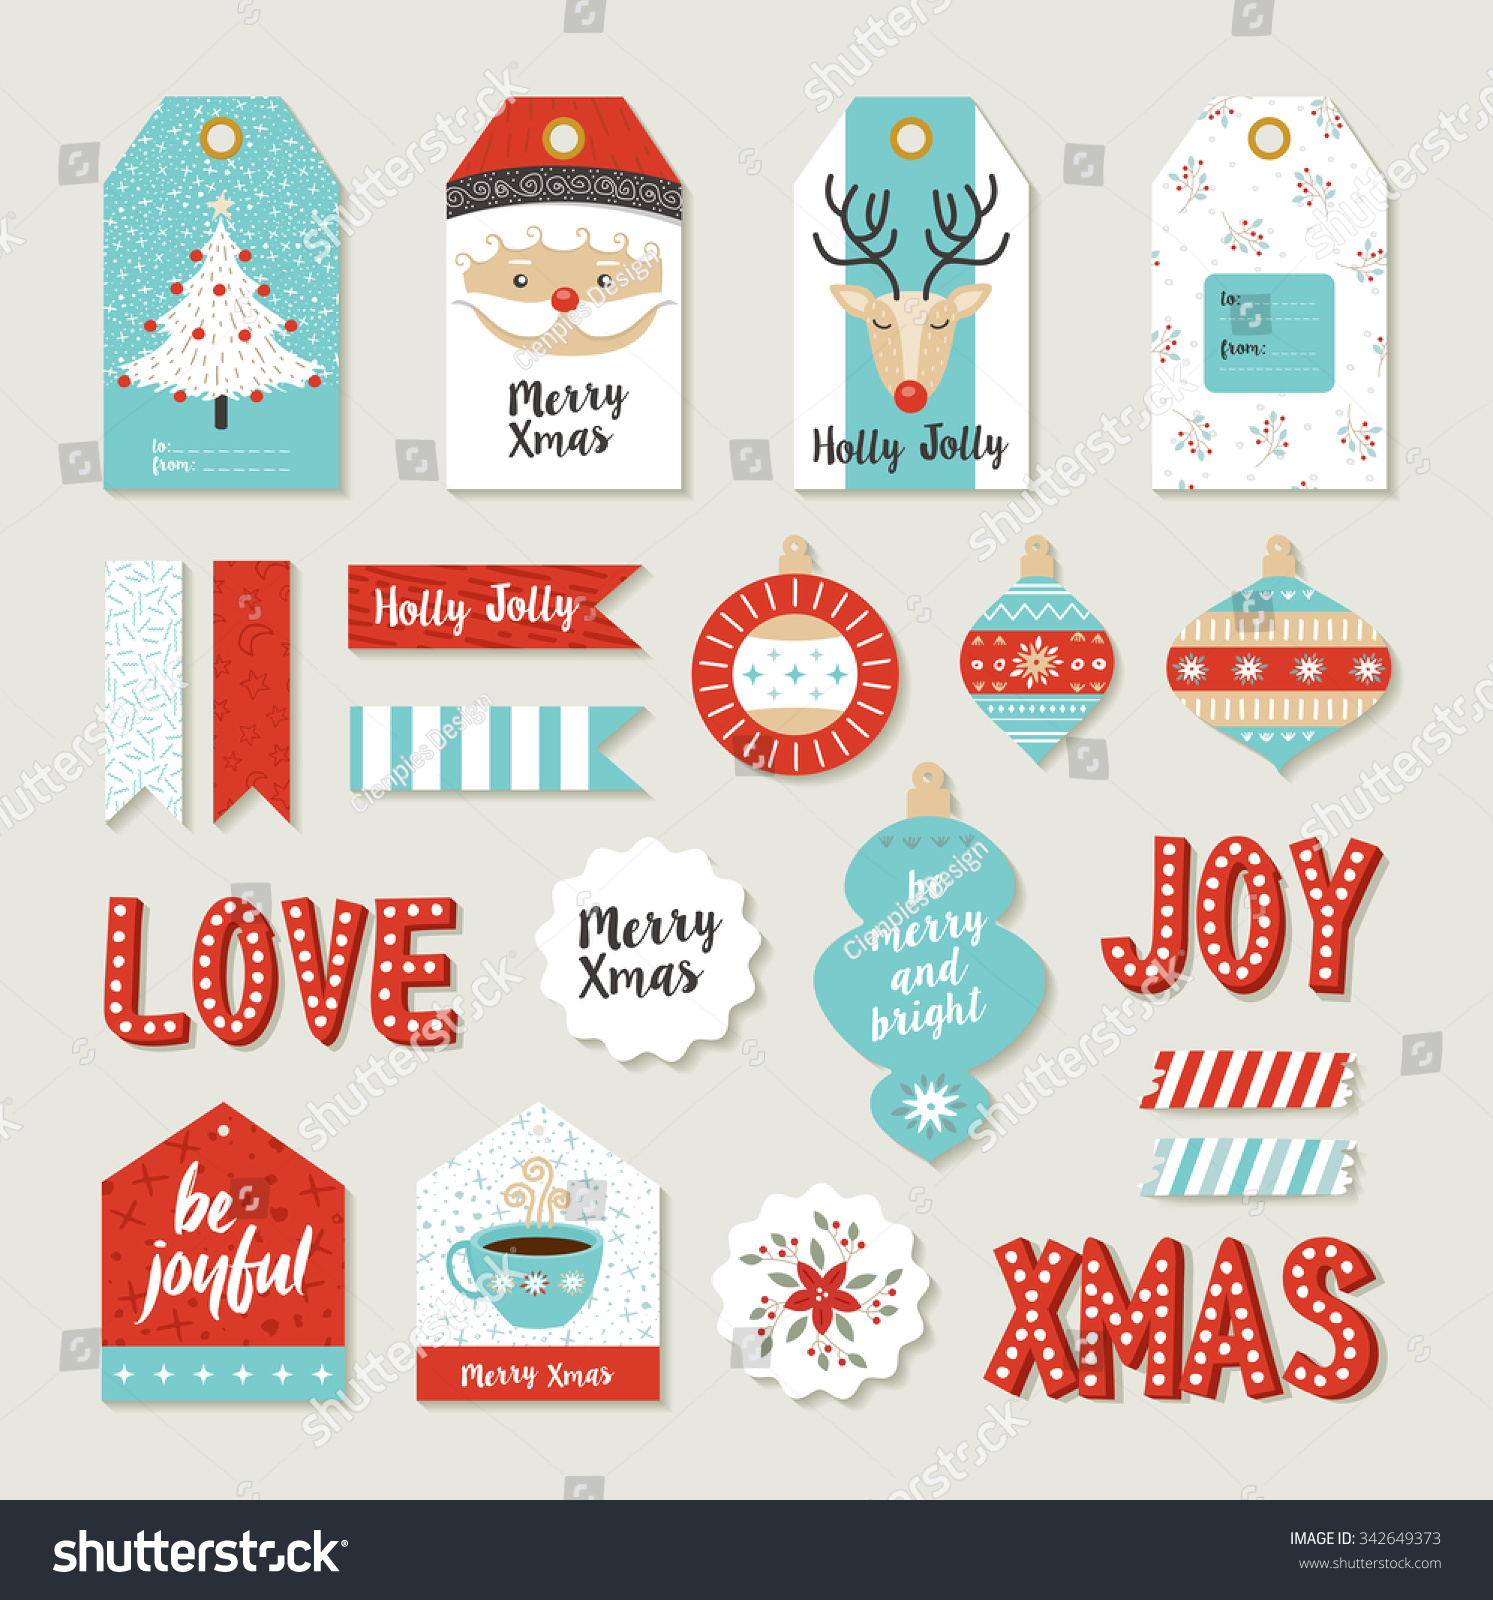 Merry Christmas Scrapbook Set Of Printable Diy Tags, Signs